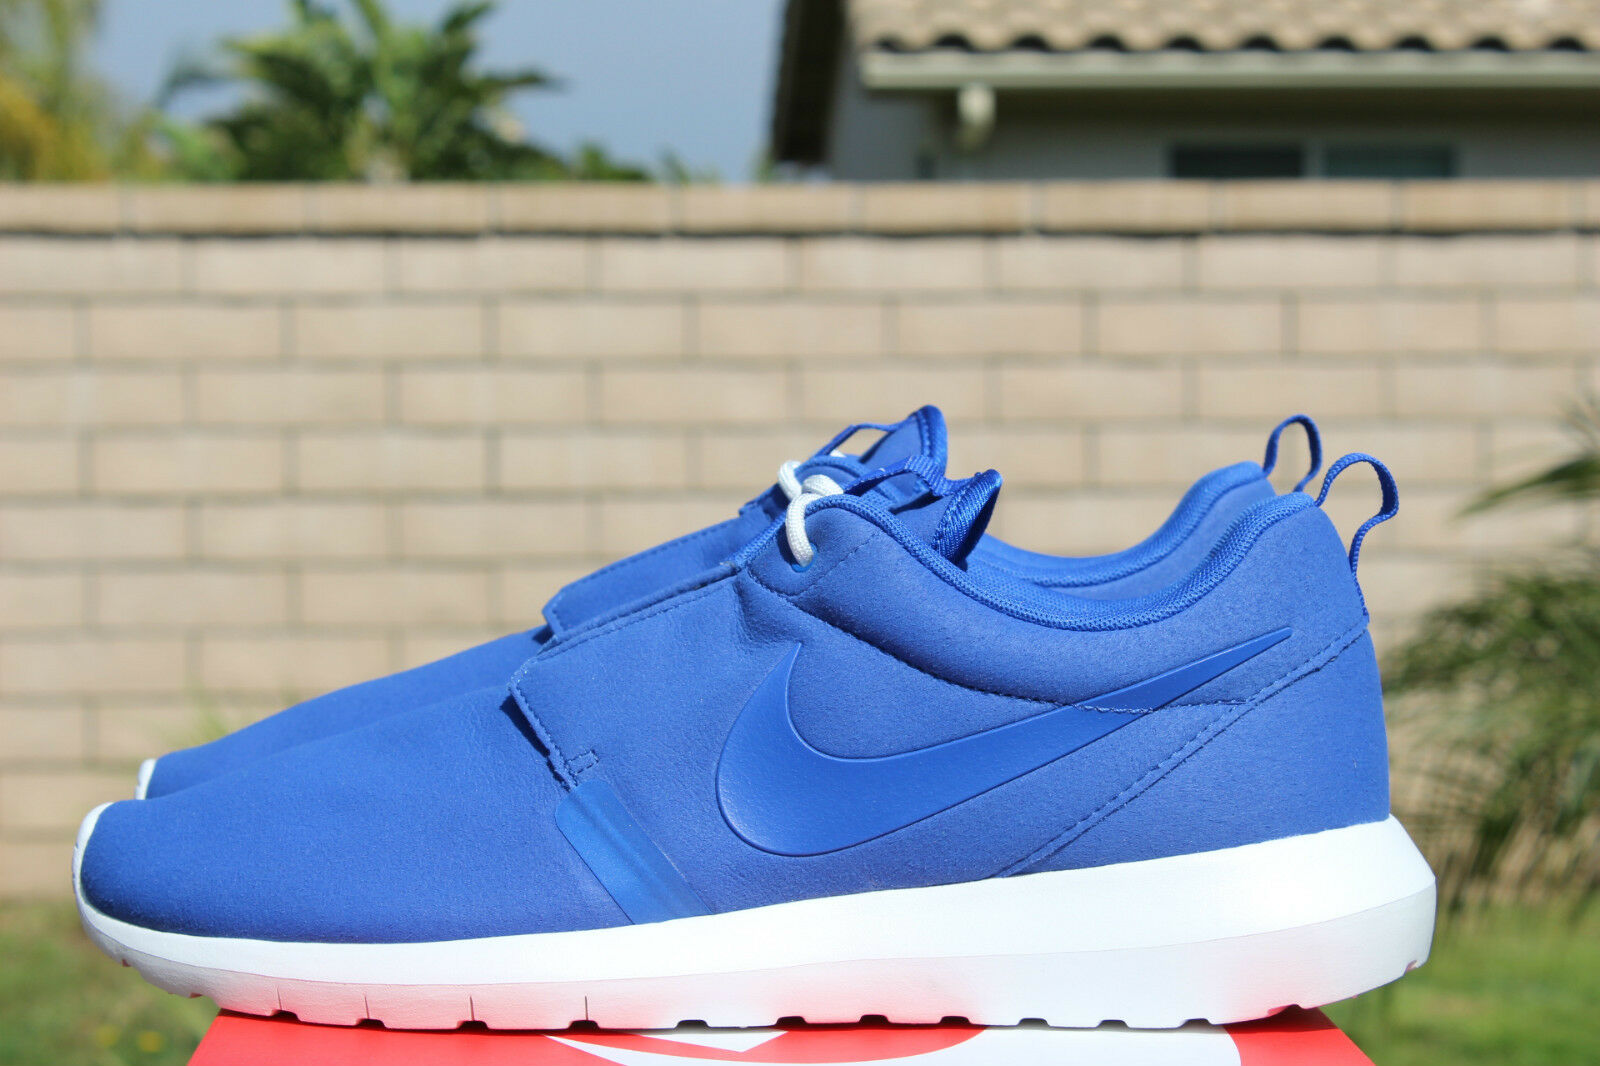 NIKE ROSHERUN NM 9 NATURAL MOTION ROYAL BLUE SUMMIT WHITE ROSHE 631749 441